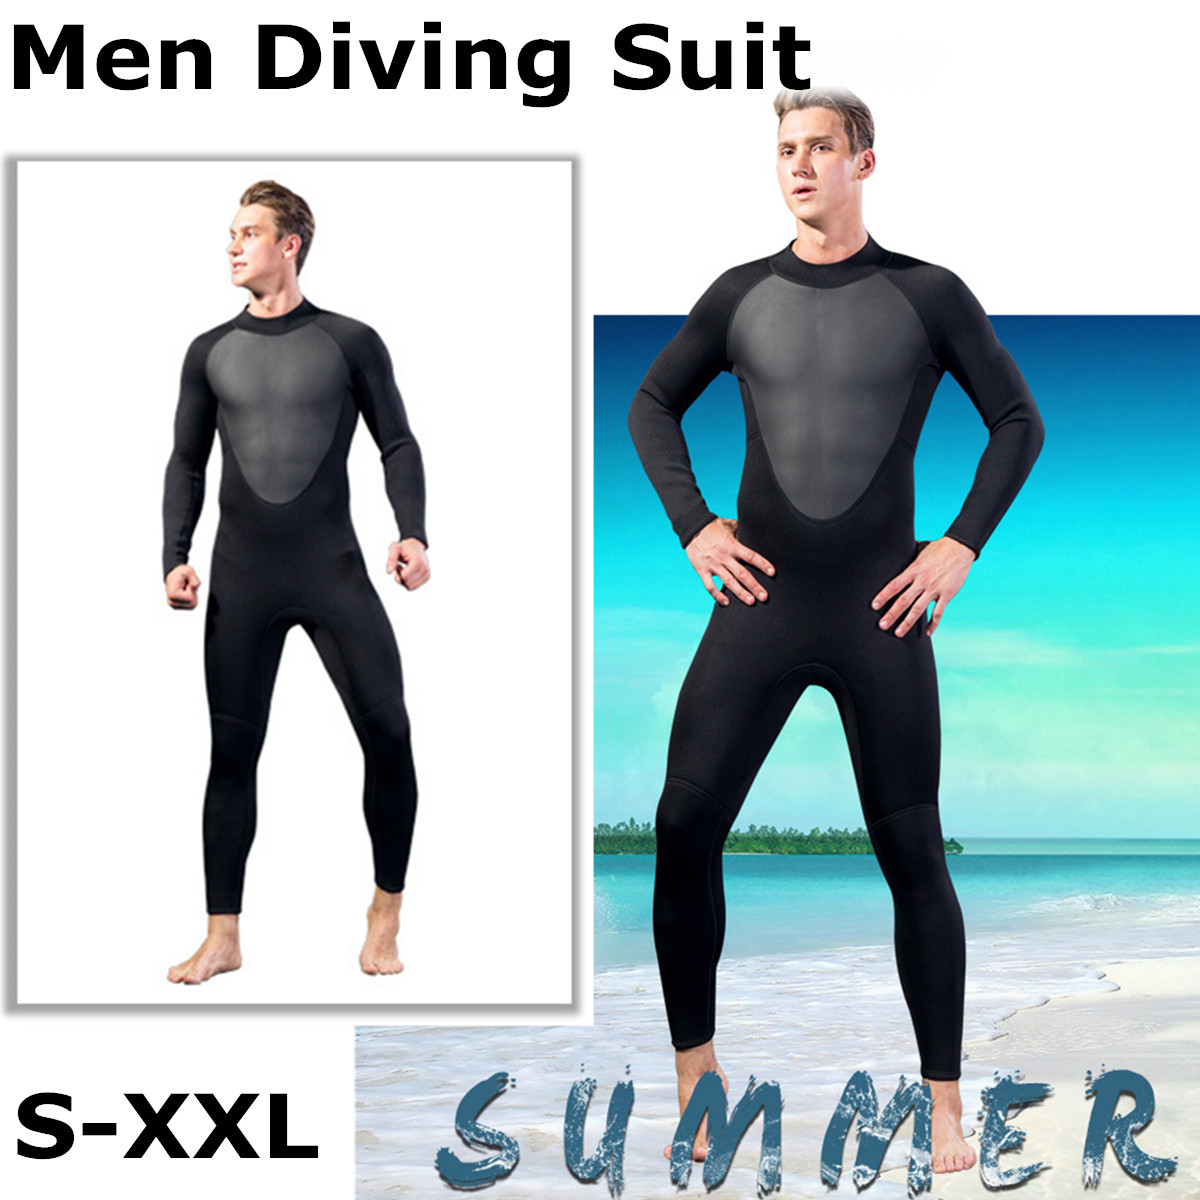 b1053cd0bb Detail Feedback Questions about Full Bodysuit 3MM Mens WetSuit S XL Super  Elasticity Diving Suit For Swimming Surfing Snorkeling Elastic Adjustable  Cloth ...